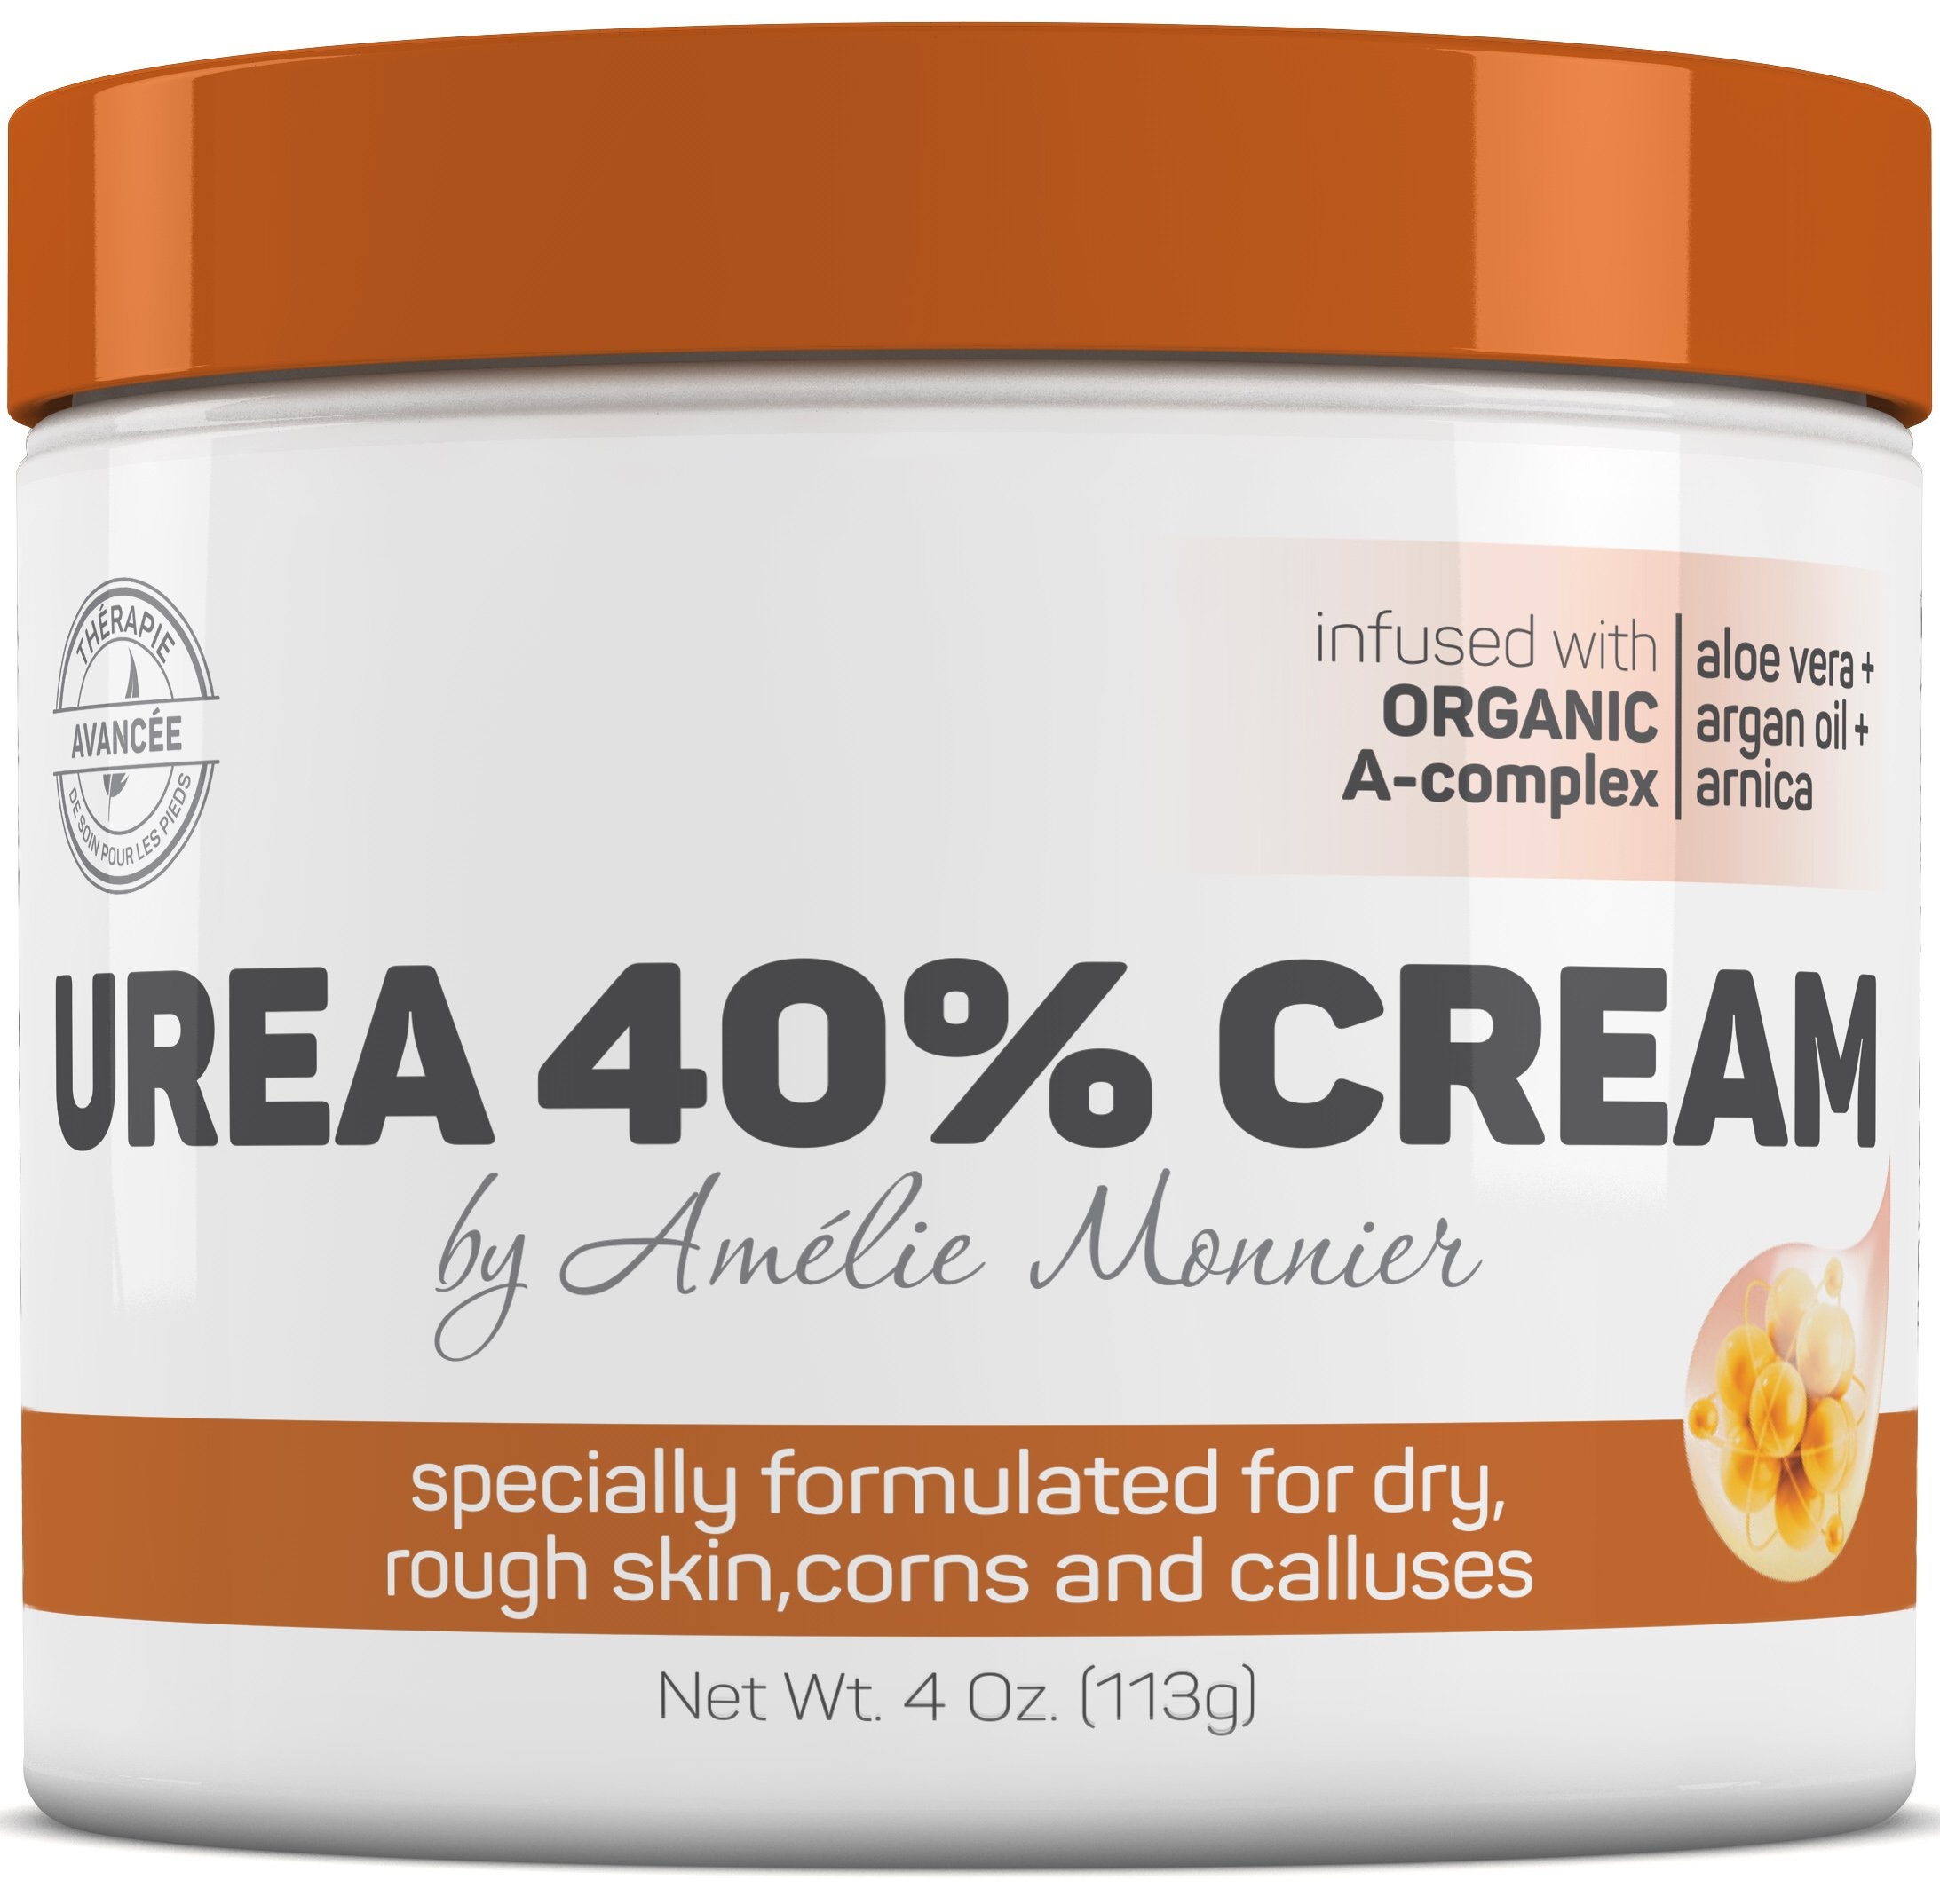 Urea 40% Healing Foot Cream with Organic Botanicals - Instant Relief for Cracked Heels, Dry & Rough Skin - Best Feet, Nails & Elbows Fix - Repairs Thick, Callused Skin. 4 oz Moisturizer